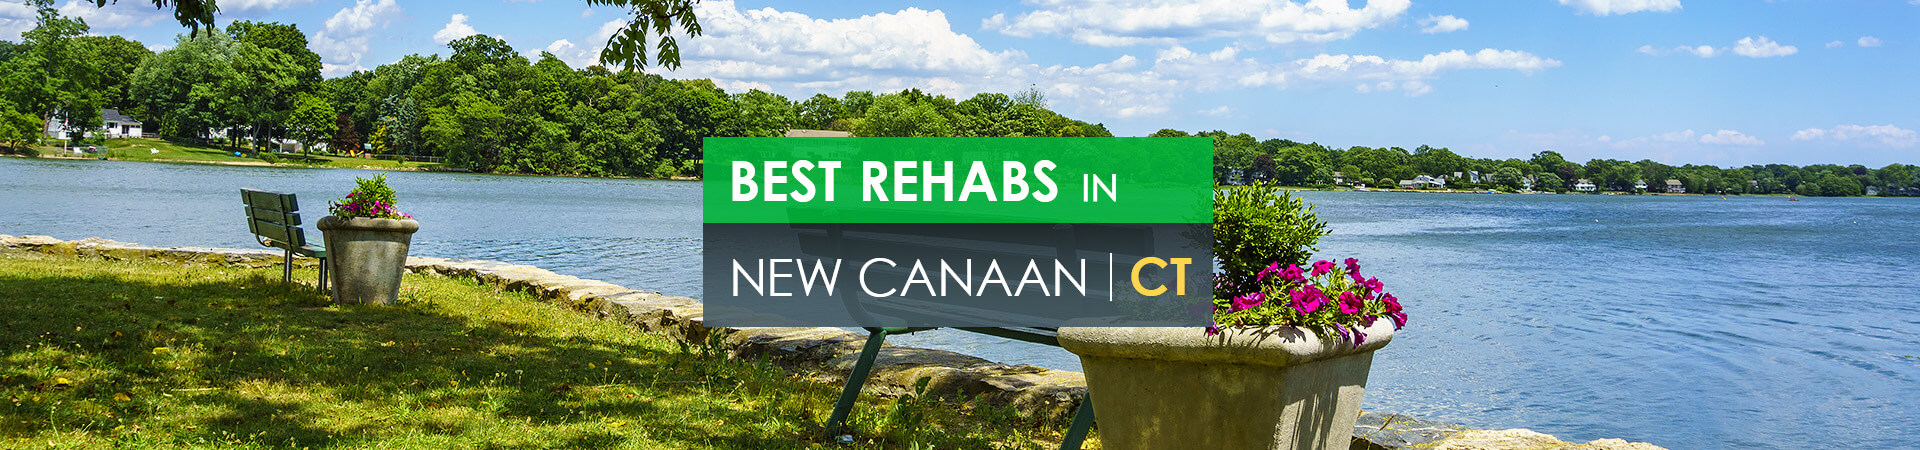 Best rehabs in New Canaan, CT